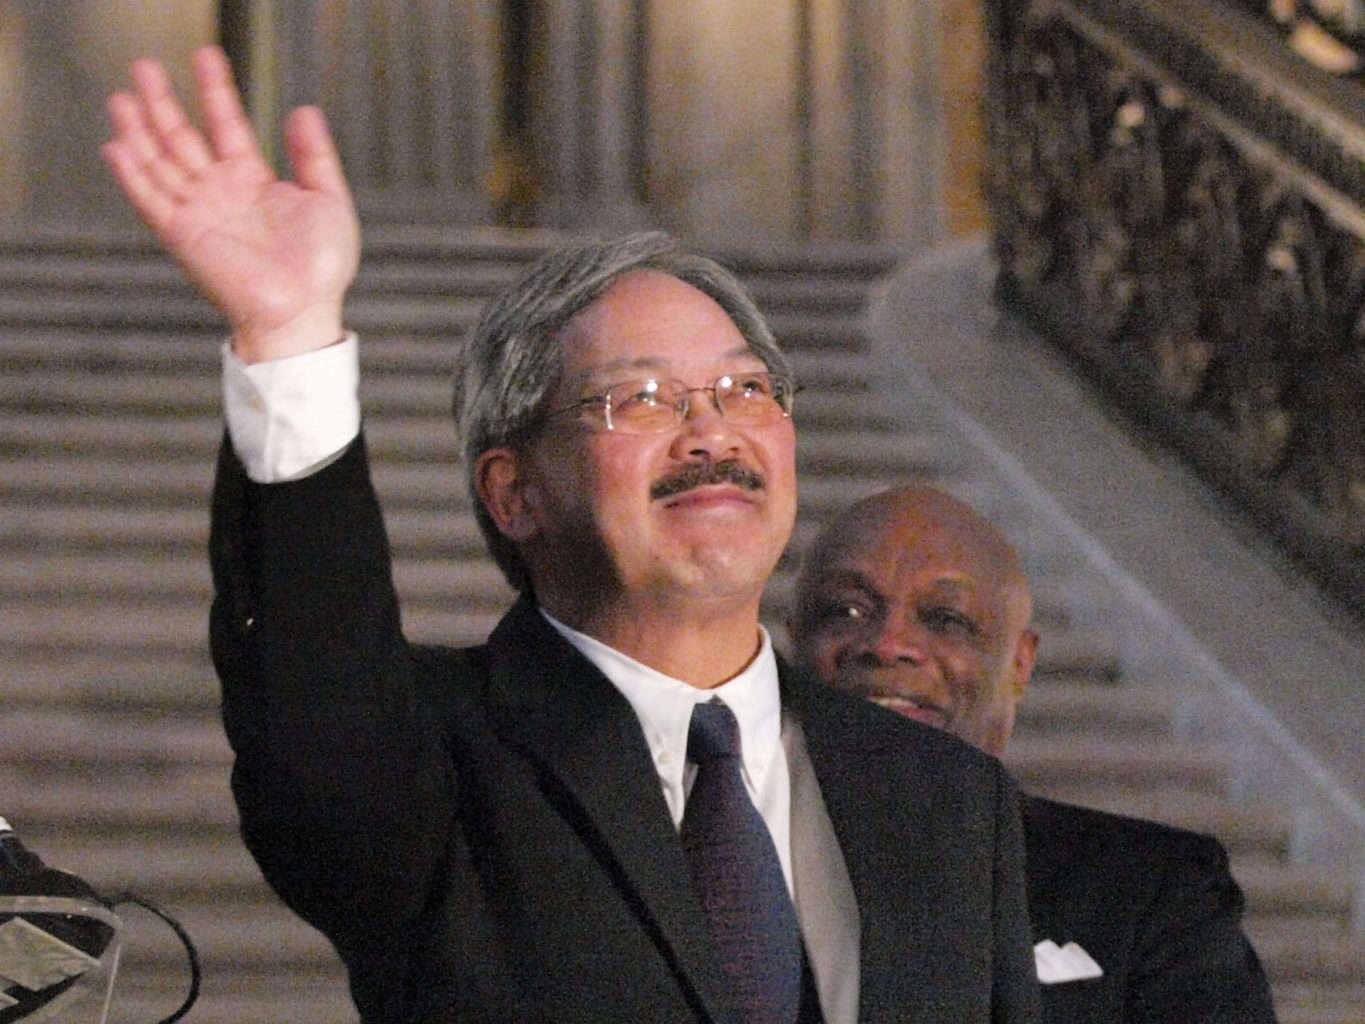 Mayor Ed Lee waves as he's sworn into office on Jan. 12, 2011. (Mike Koozmin/2011 S.F. Examiner)